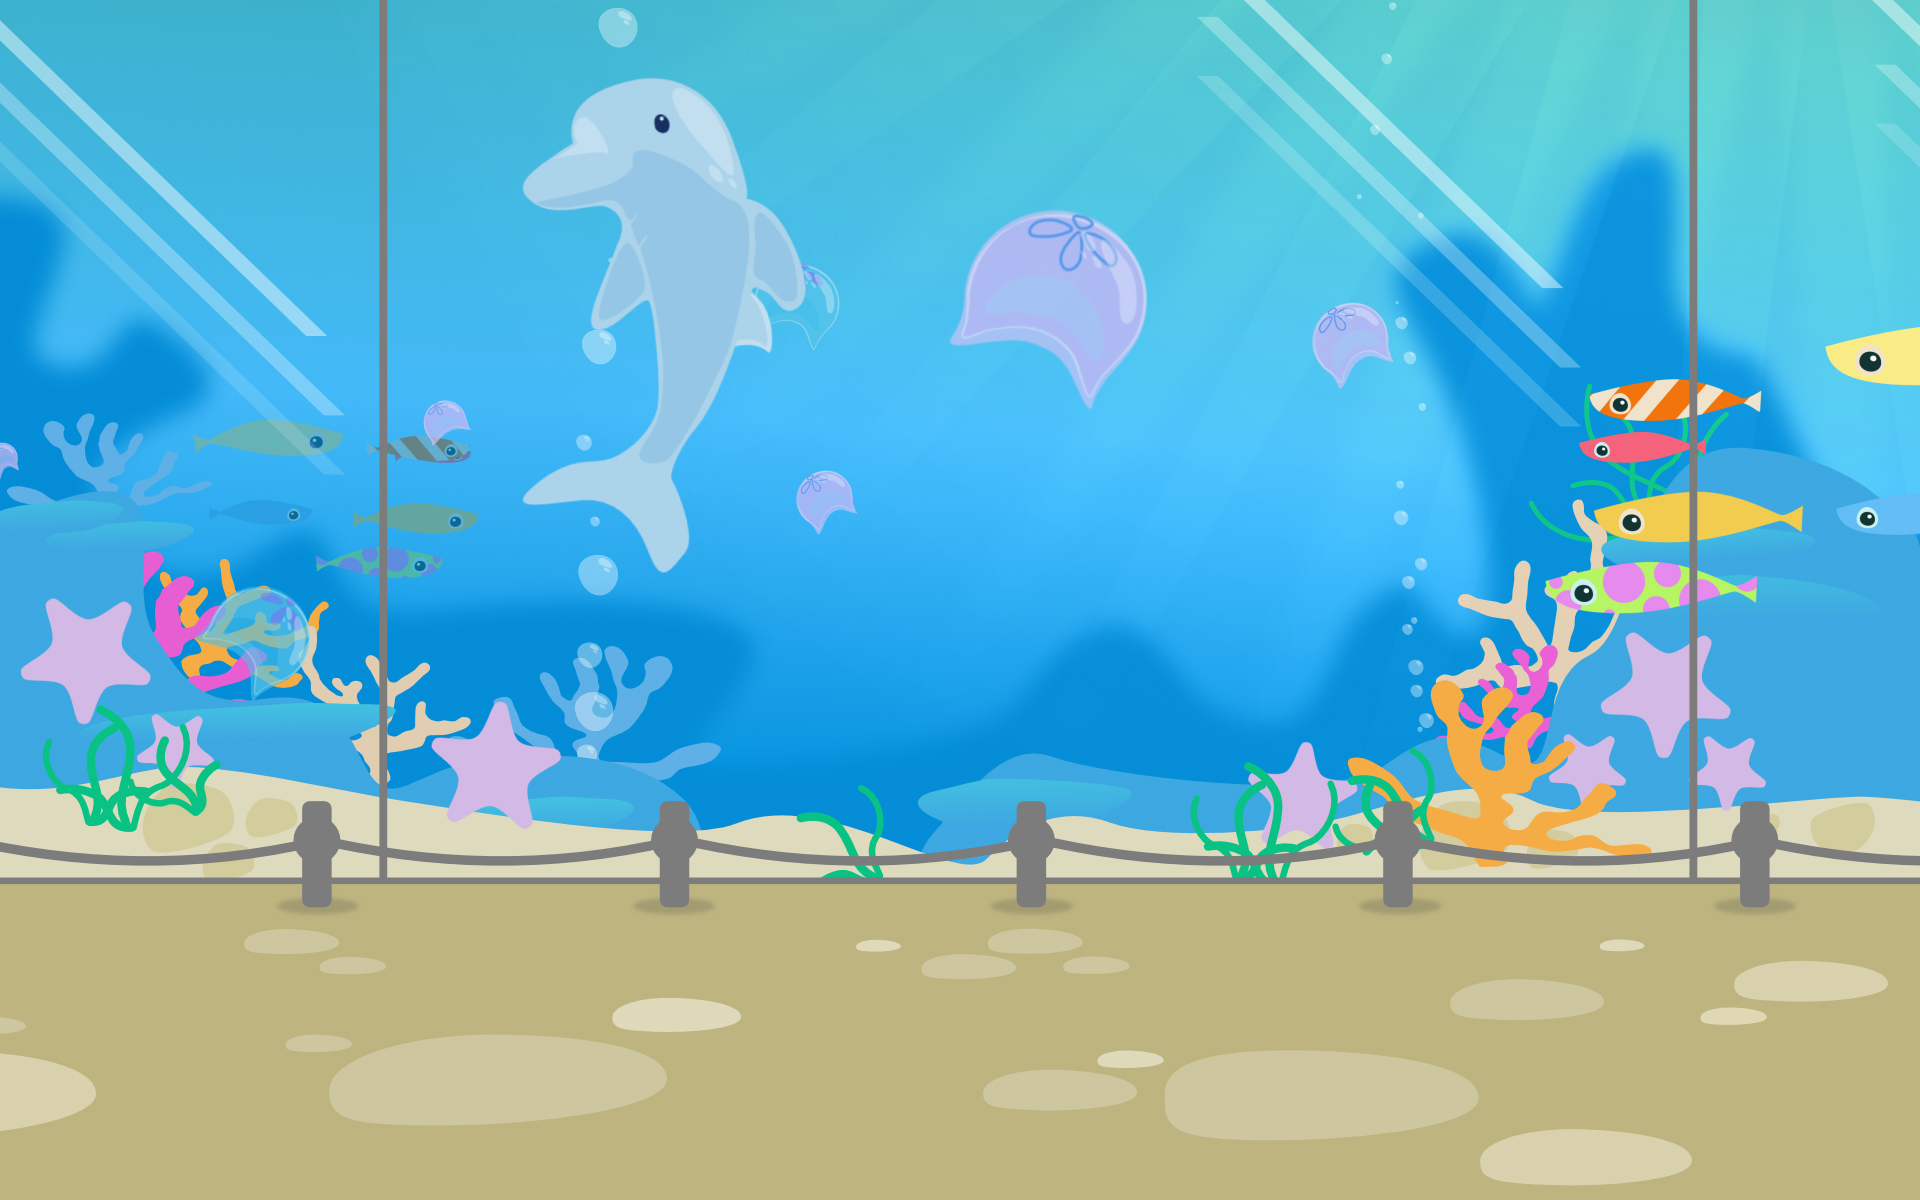 Underwater World Illustration - created in Affinity - for SplashDance